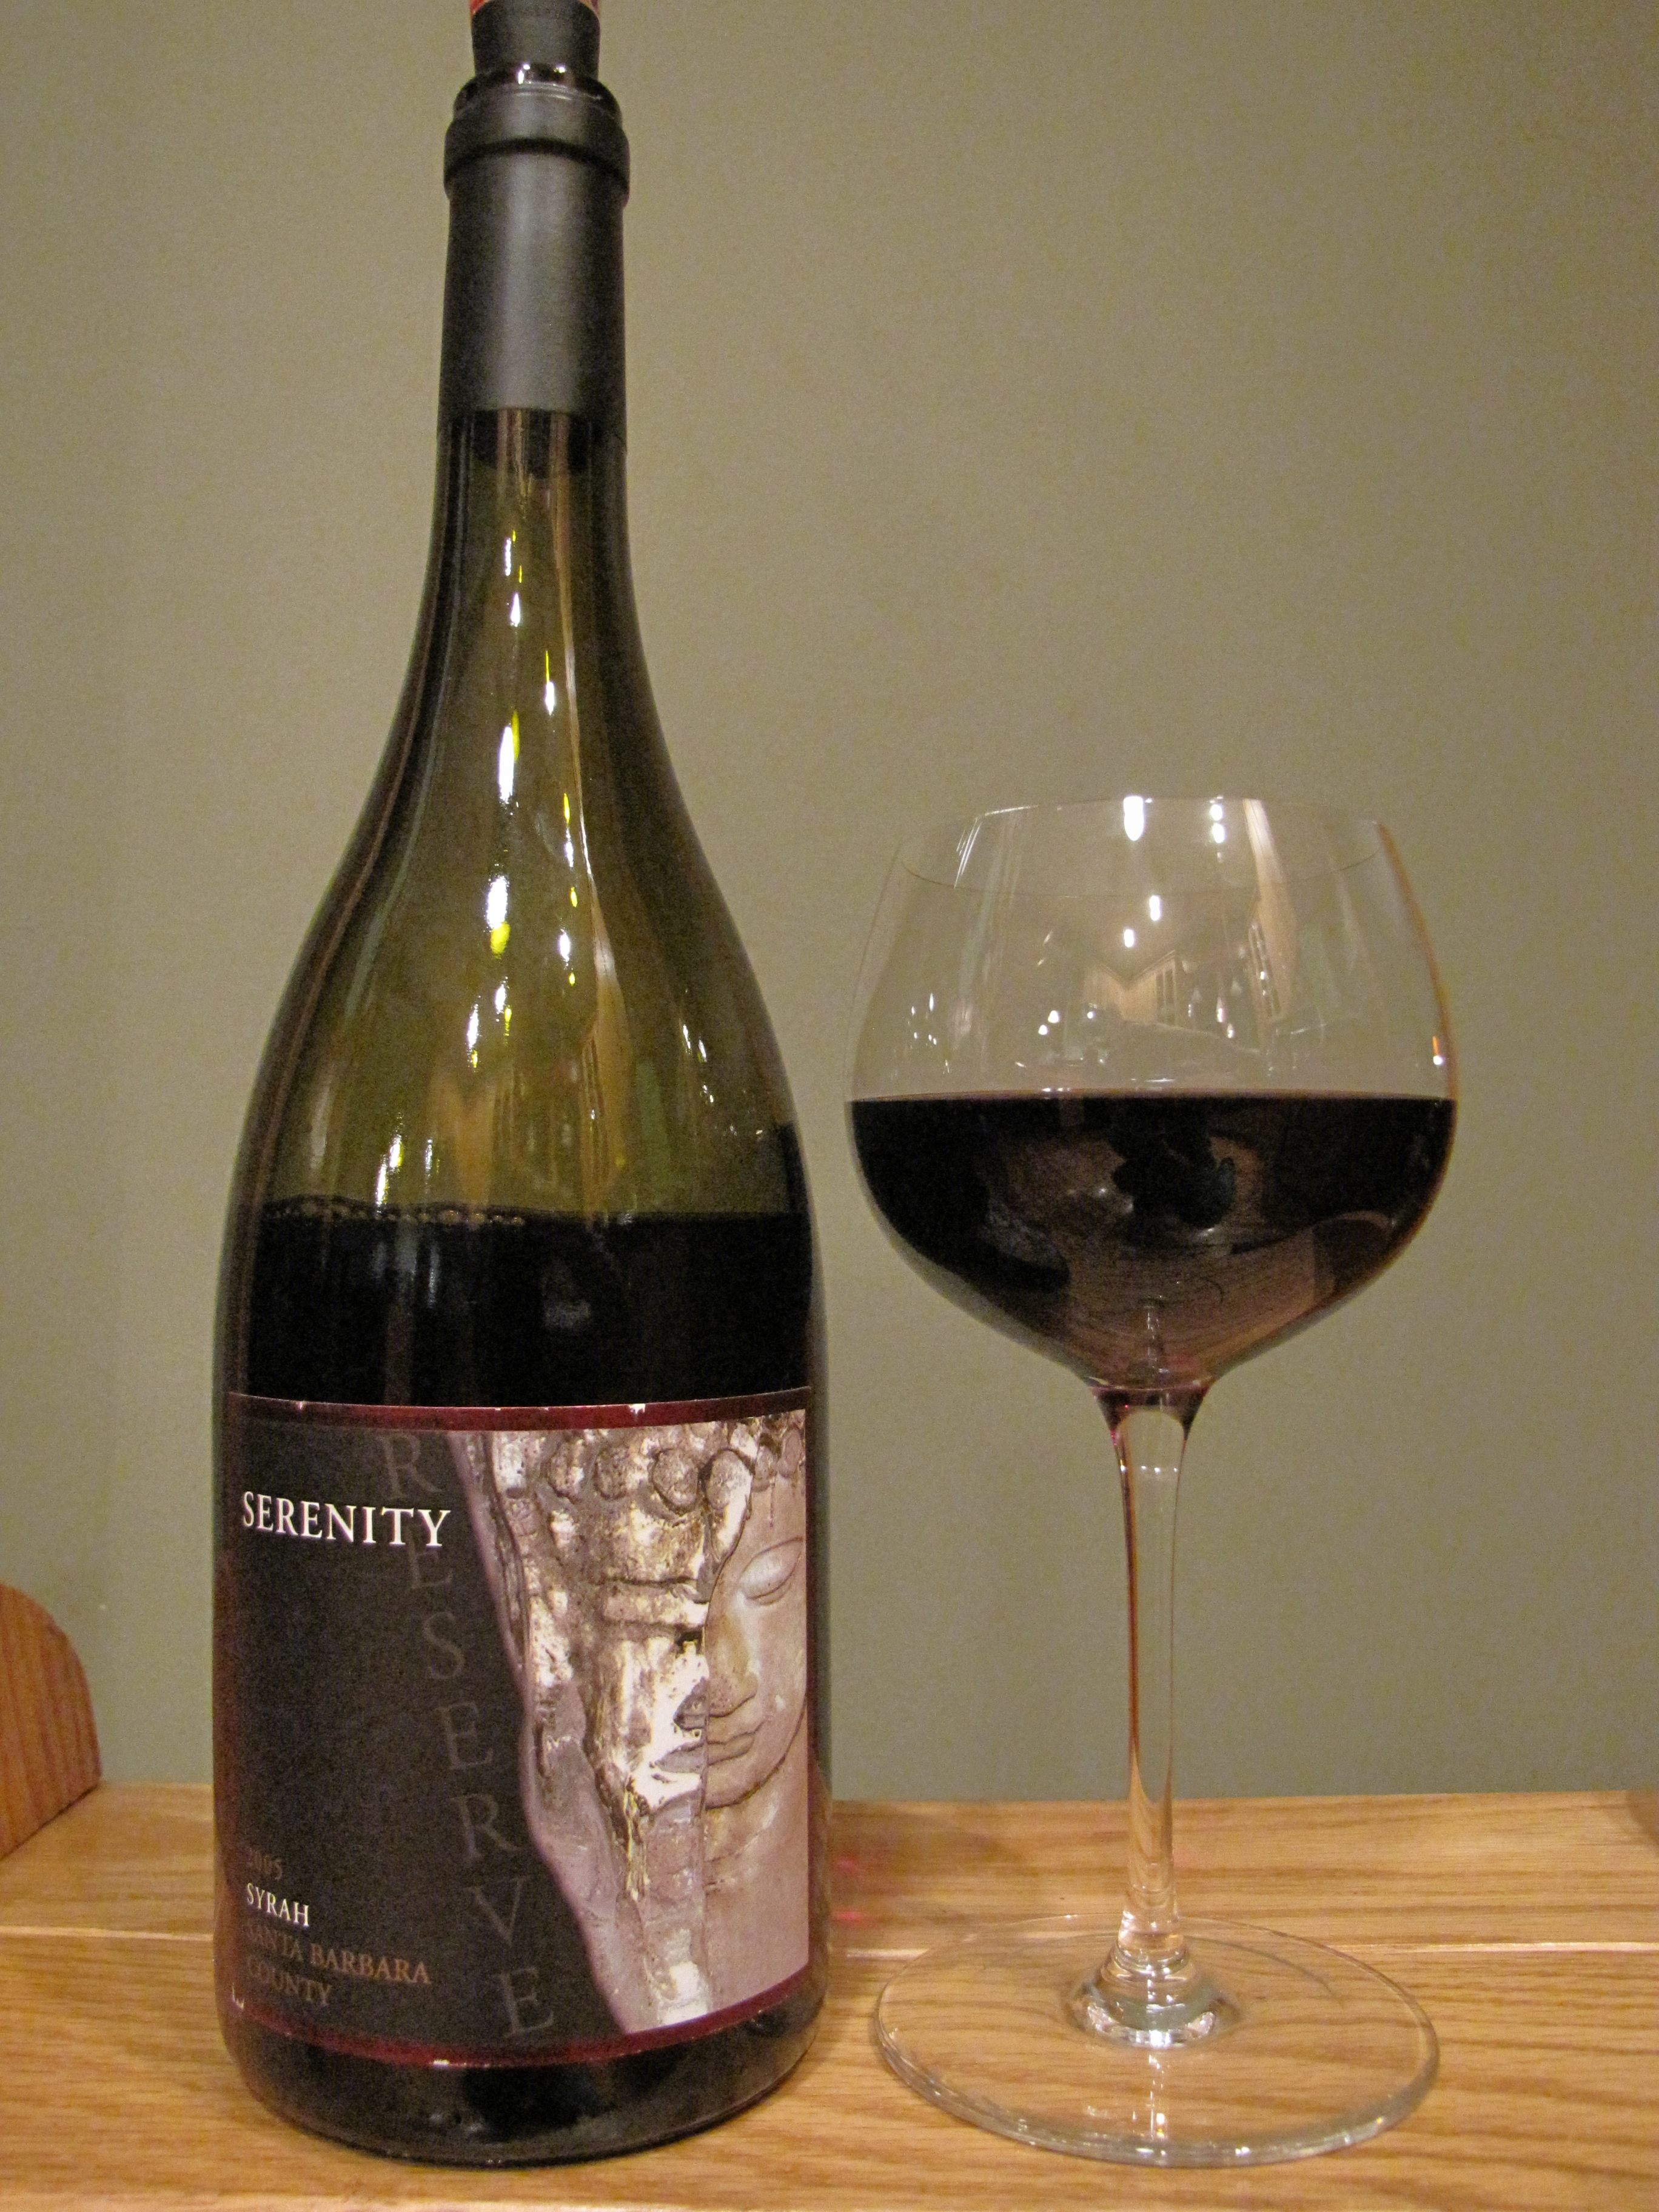 Serenity Vineyards Syrah (2005)